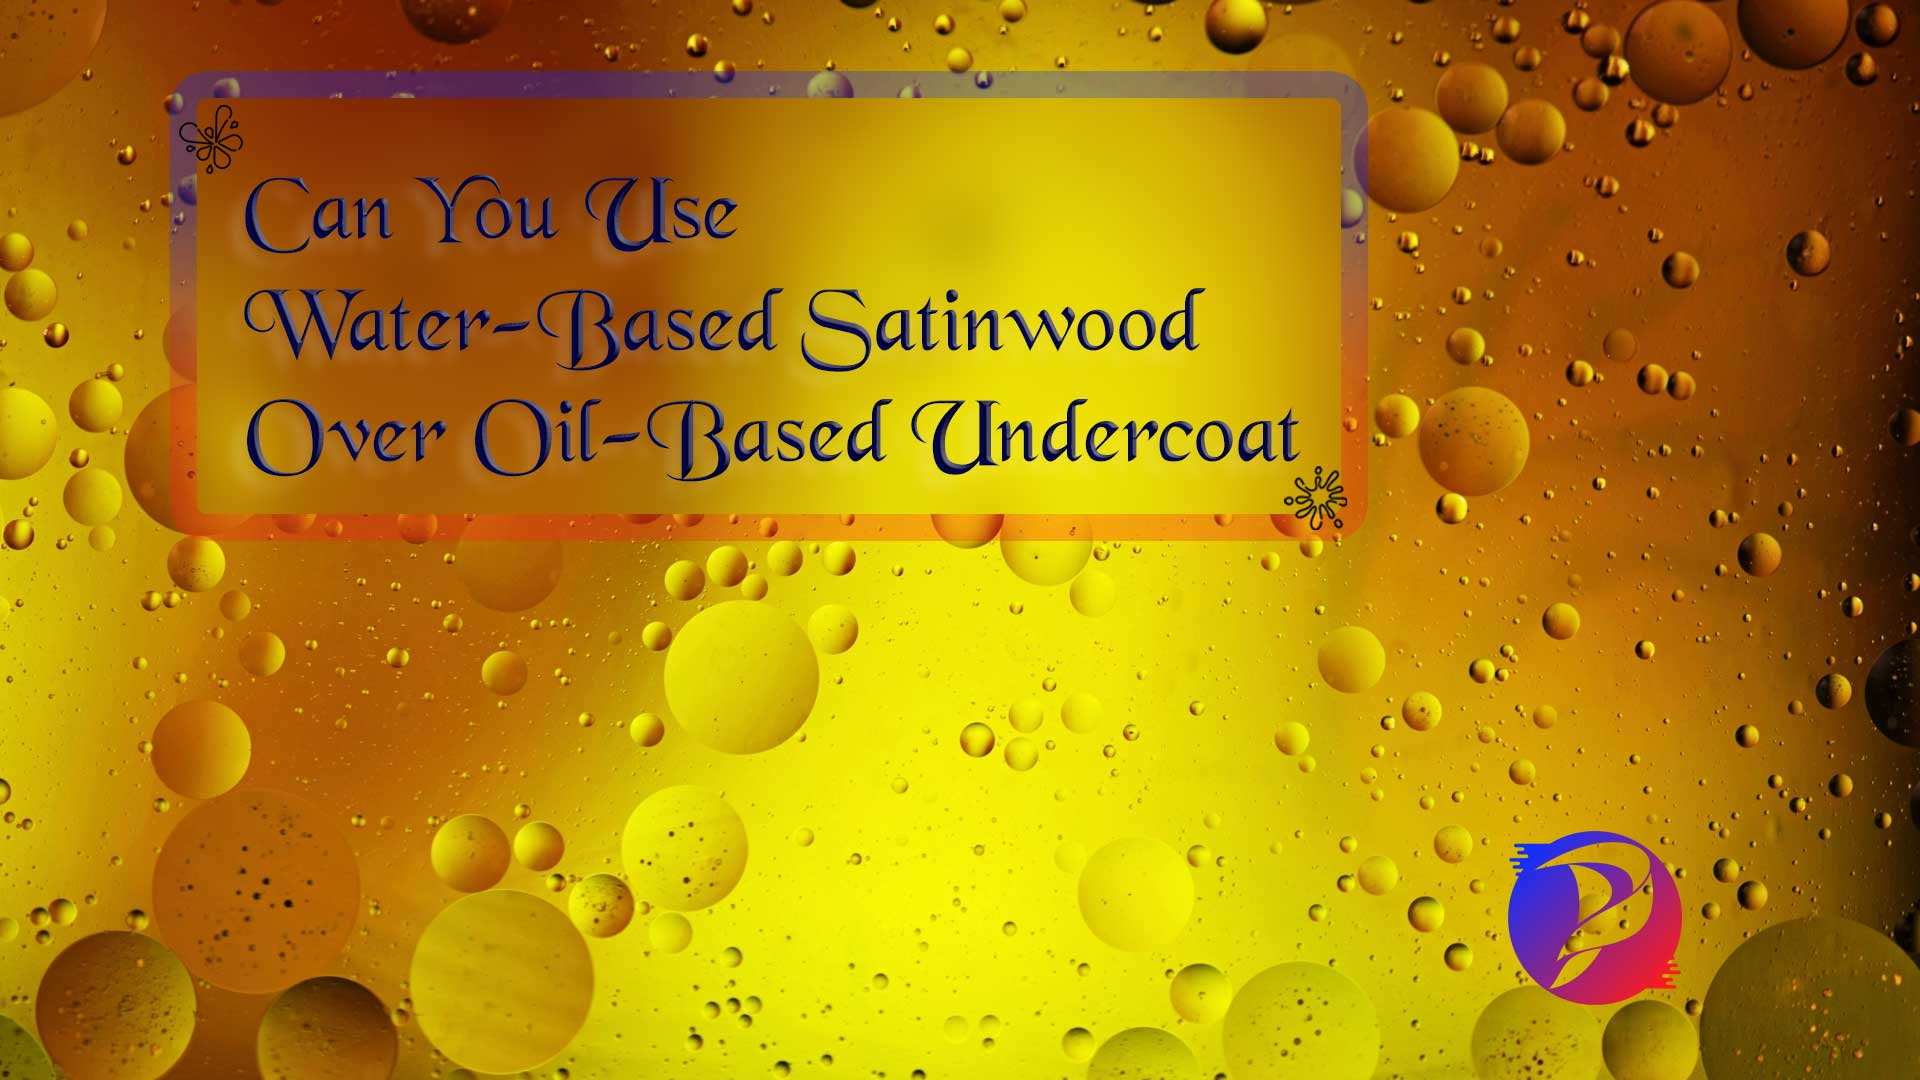 Can-You-Use-Water-Based-Satinwood-Over-Oil-Based-Undercoat